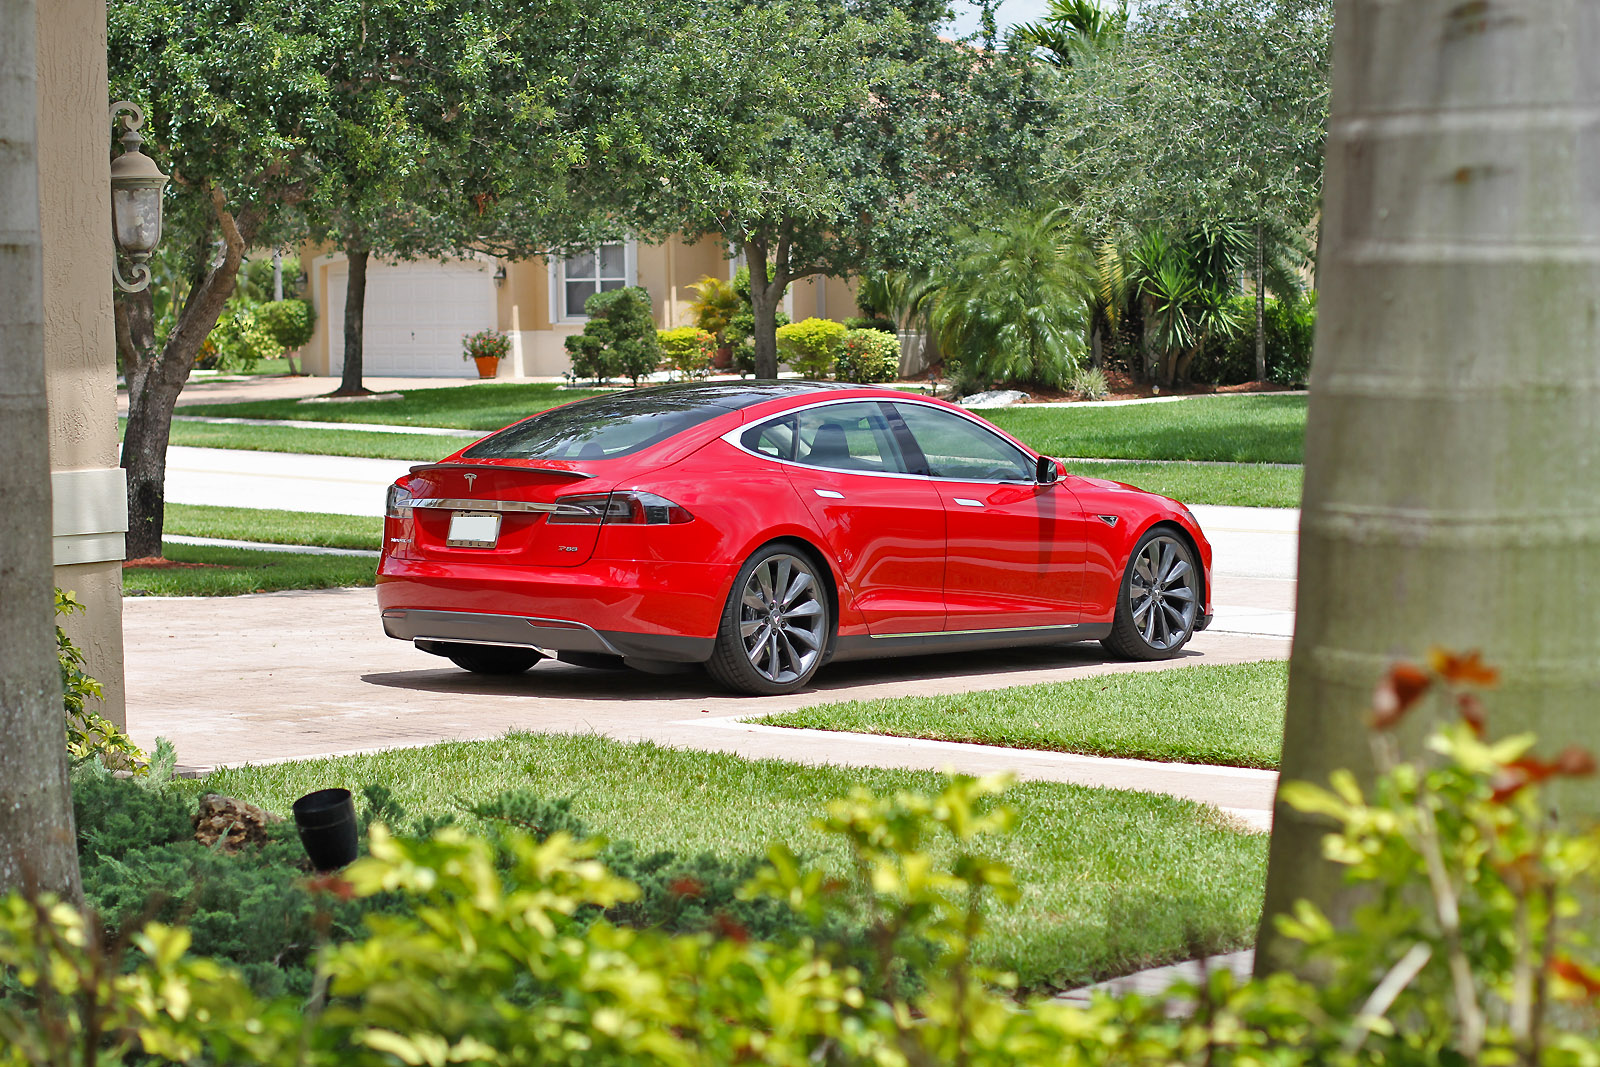 2013-tesla-model-s-p85-multi-coat-red-002.jpg